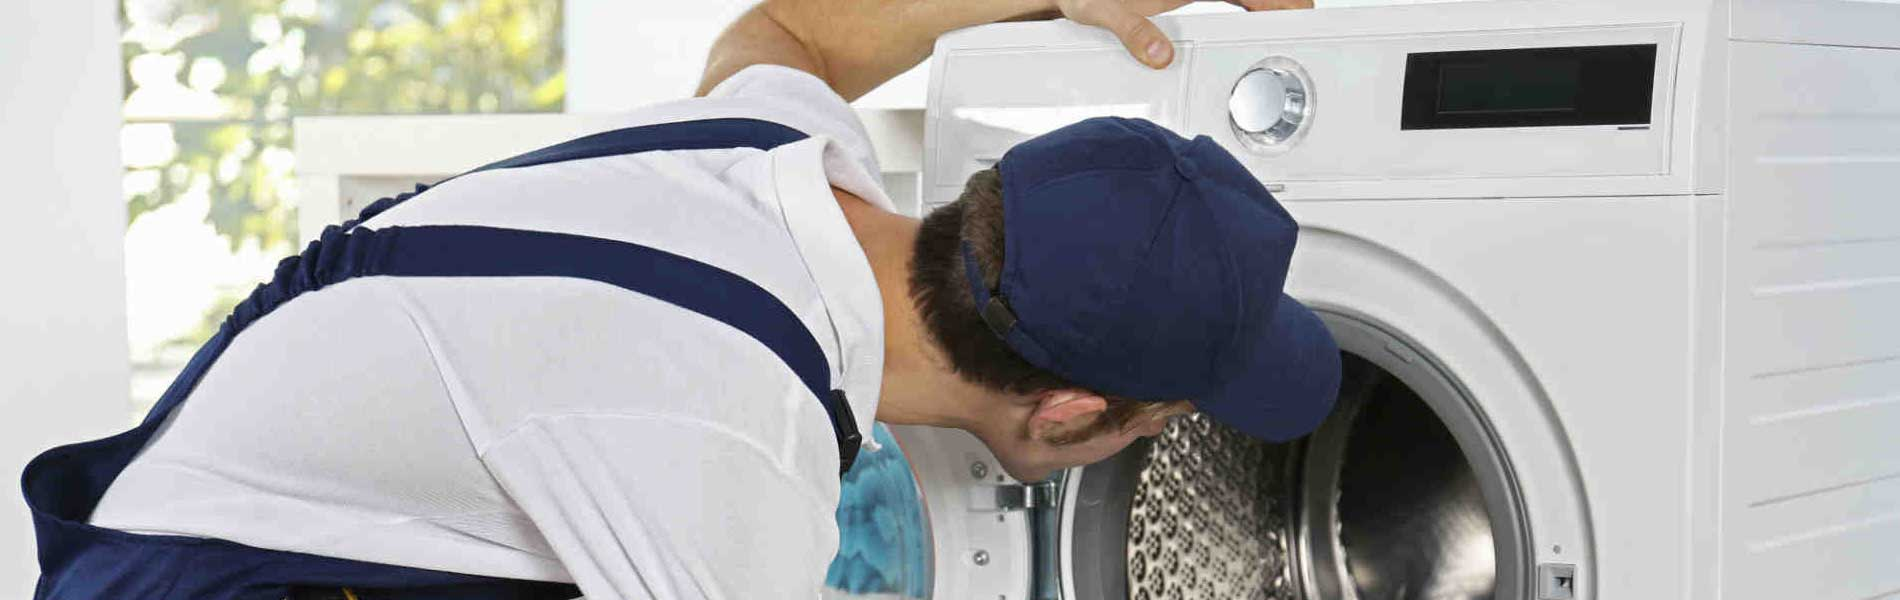 LG Washing Machine Mechanic in OMR